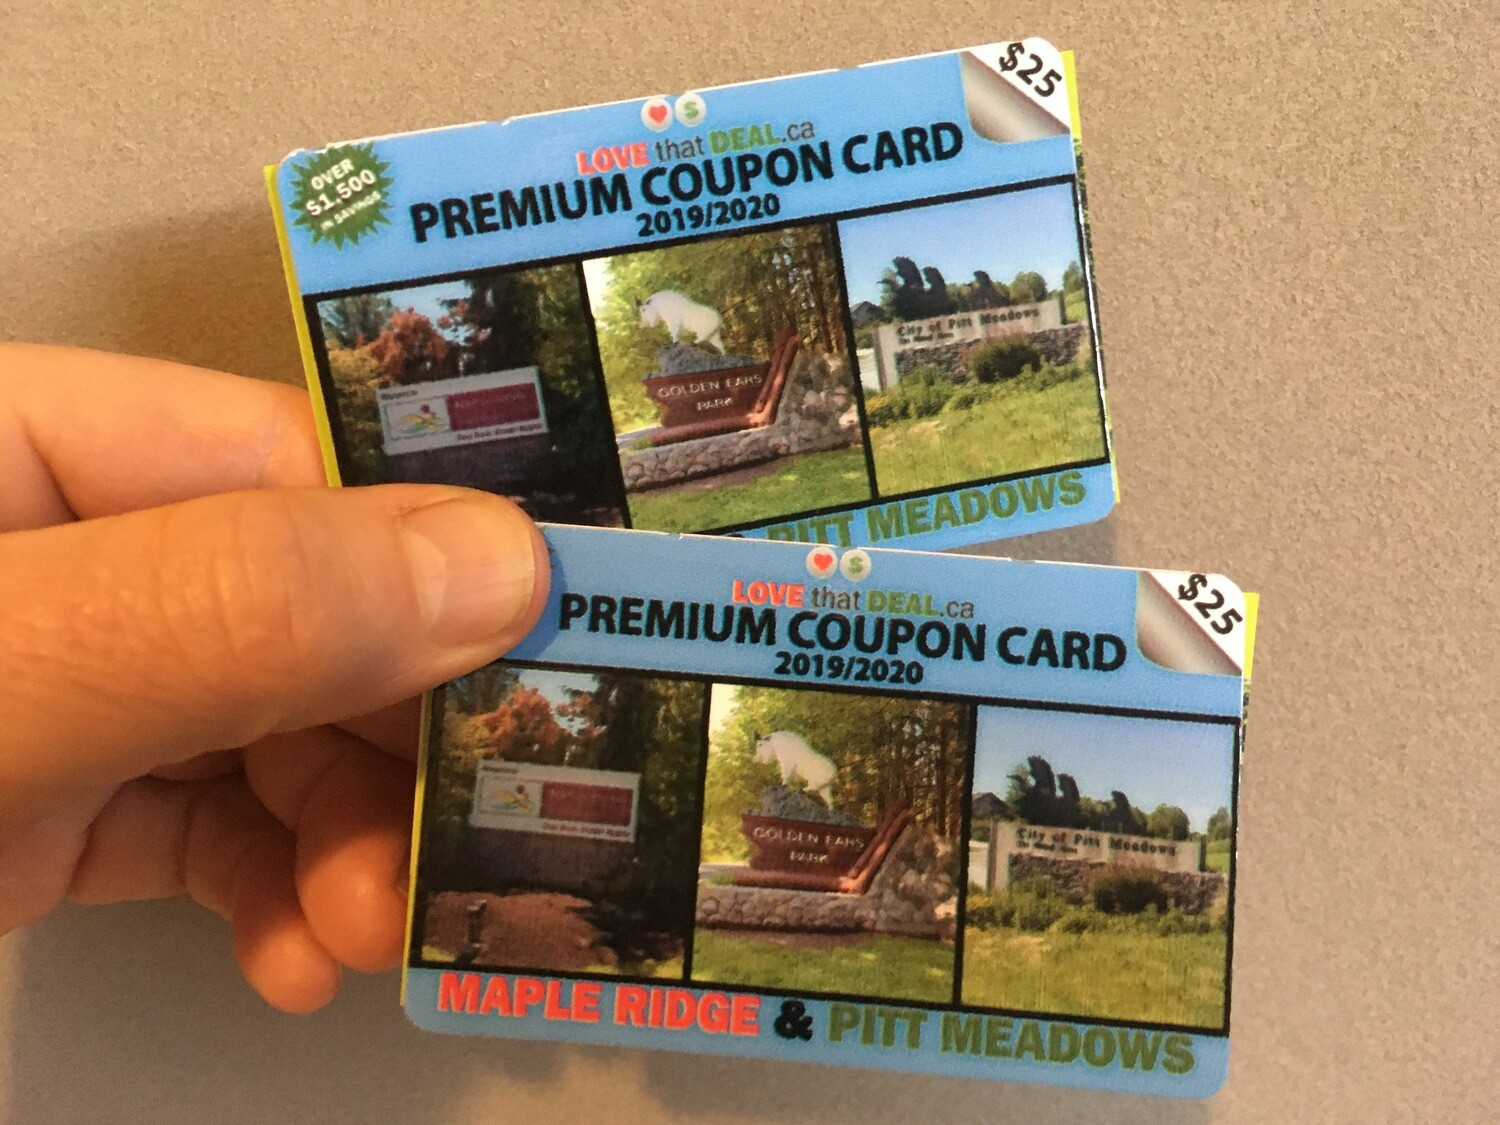 BOGO Deal - Buy One 4th Edition Premium Coupon Card and Get Second One FREE